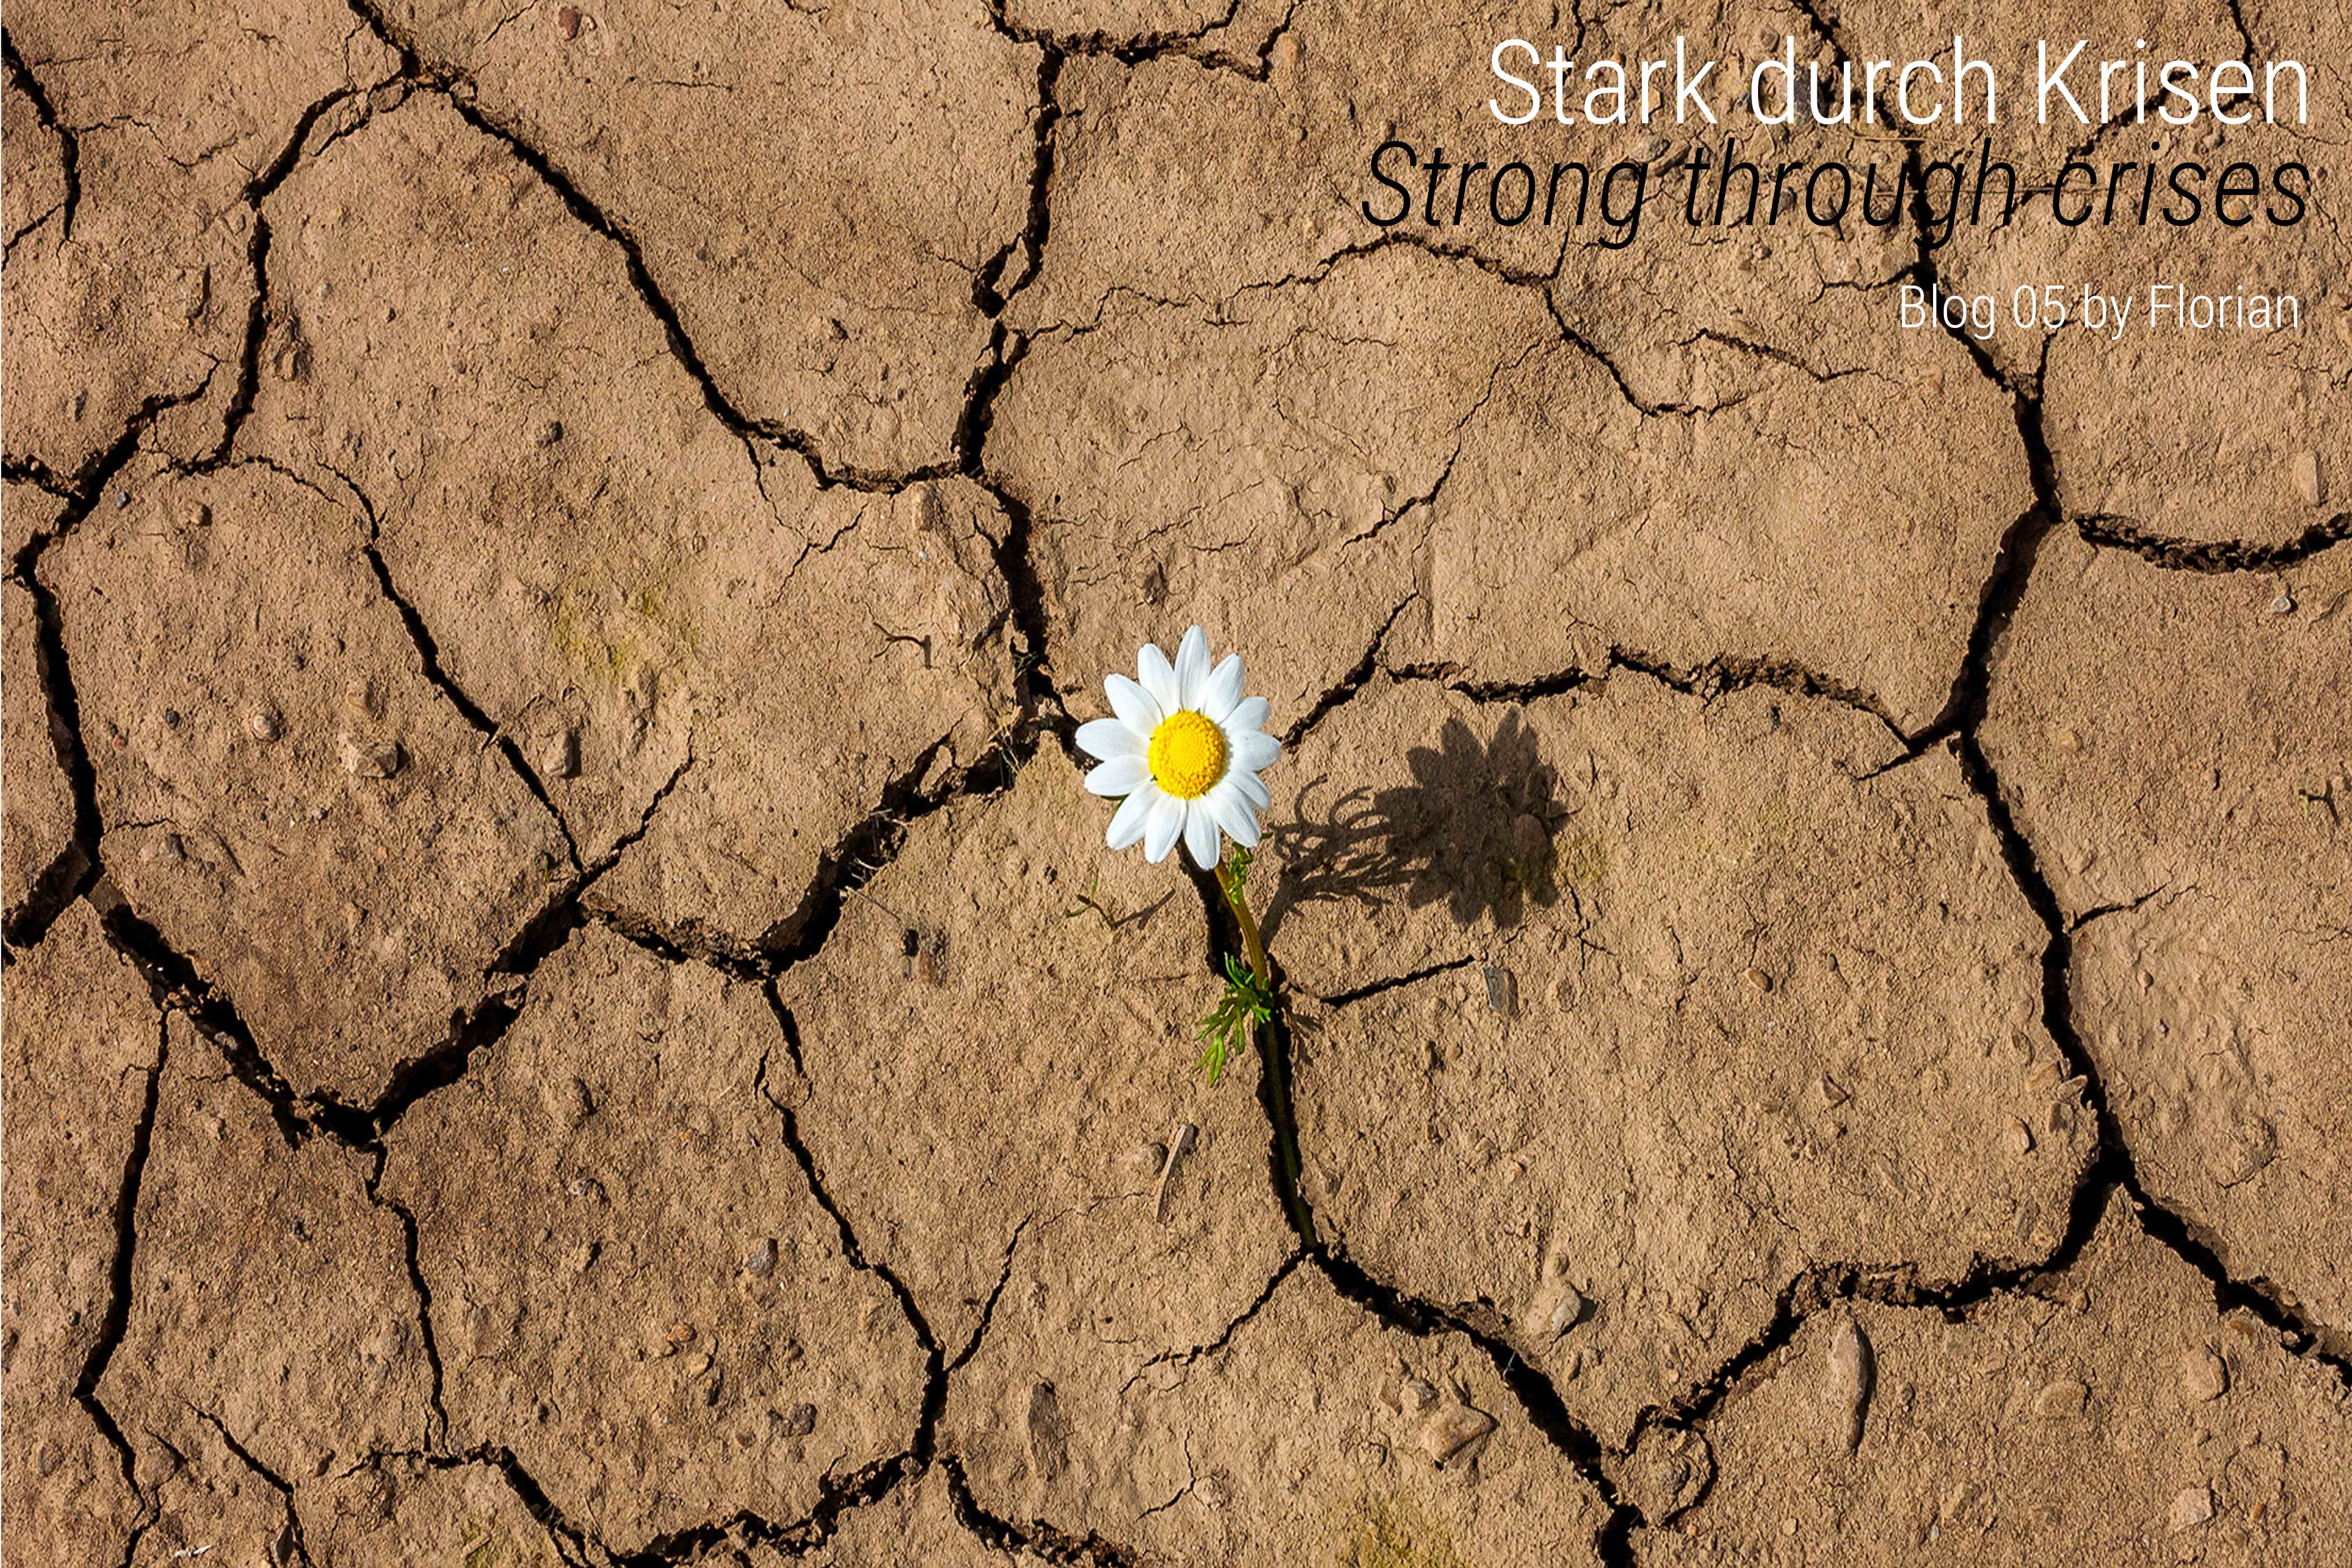 Stark durch Krisen - Strong through crises